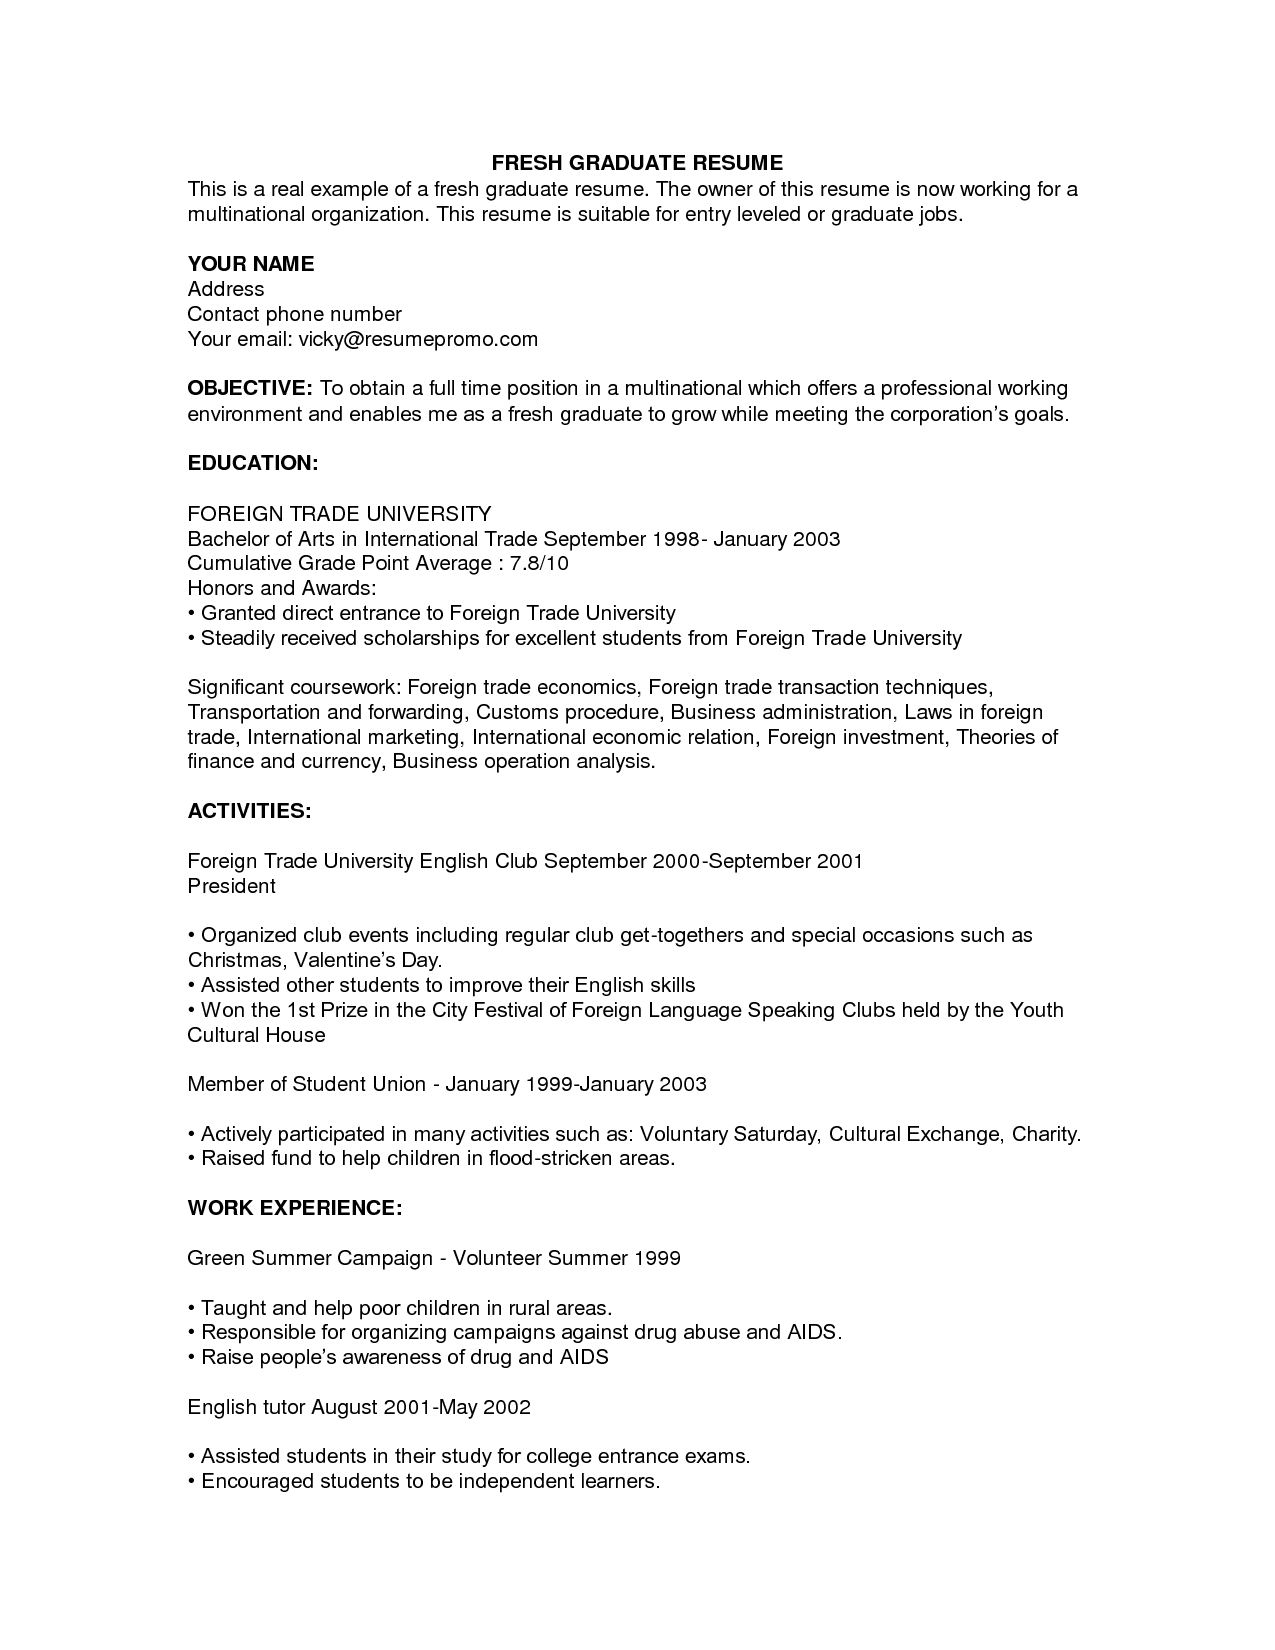 Resume Template Examples Example Of Resume For Fresh Graduate  Httpwwwresumecareer